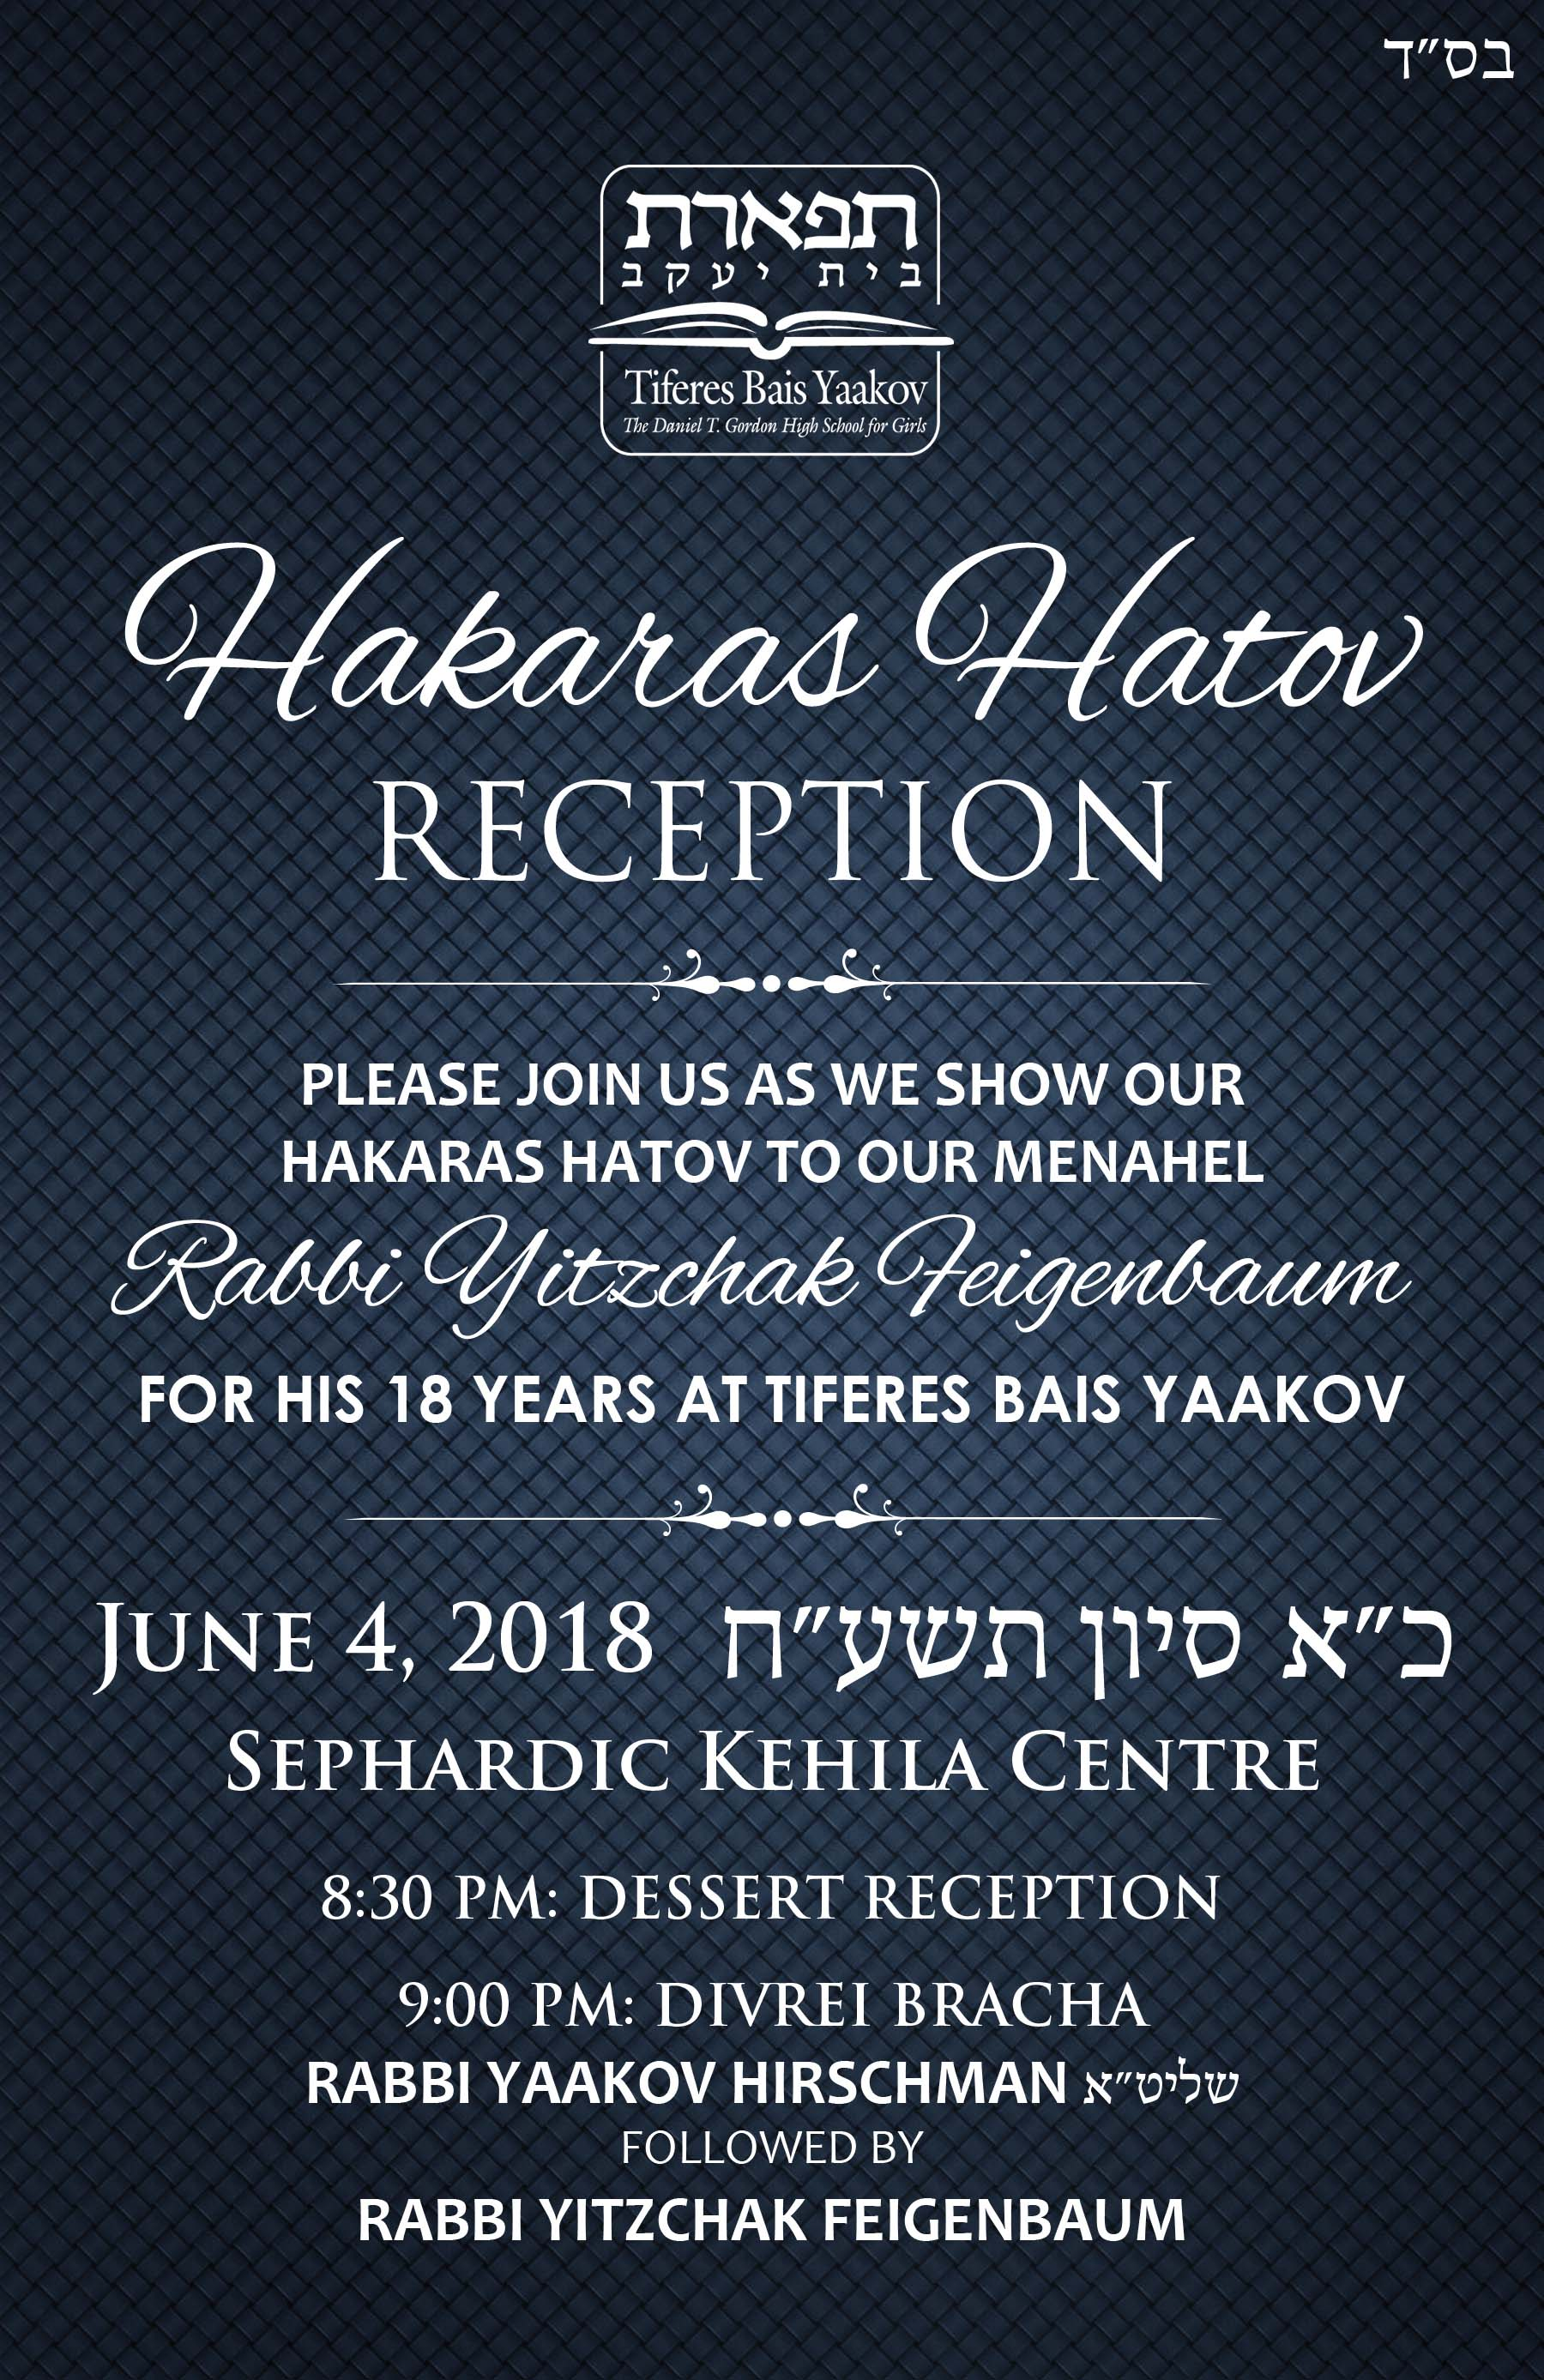 Hakaras Hatov Reception